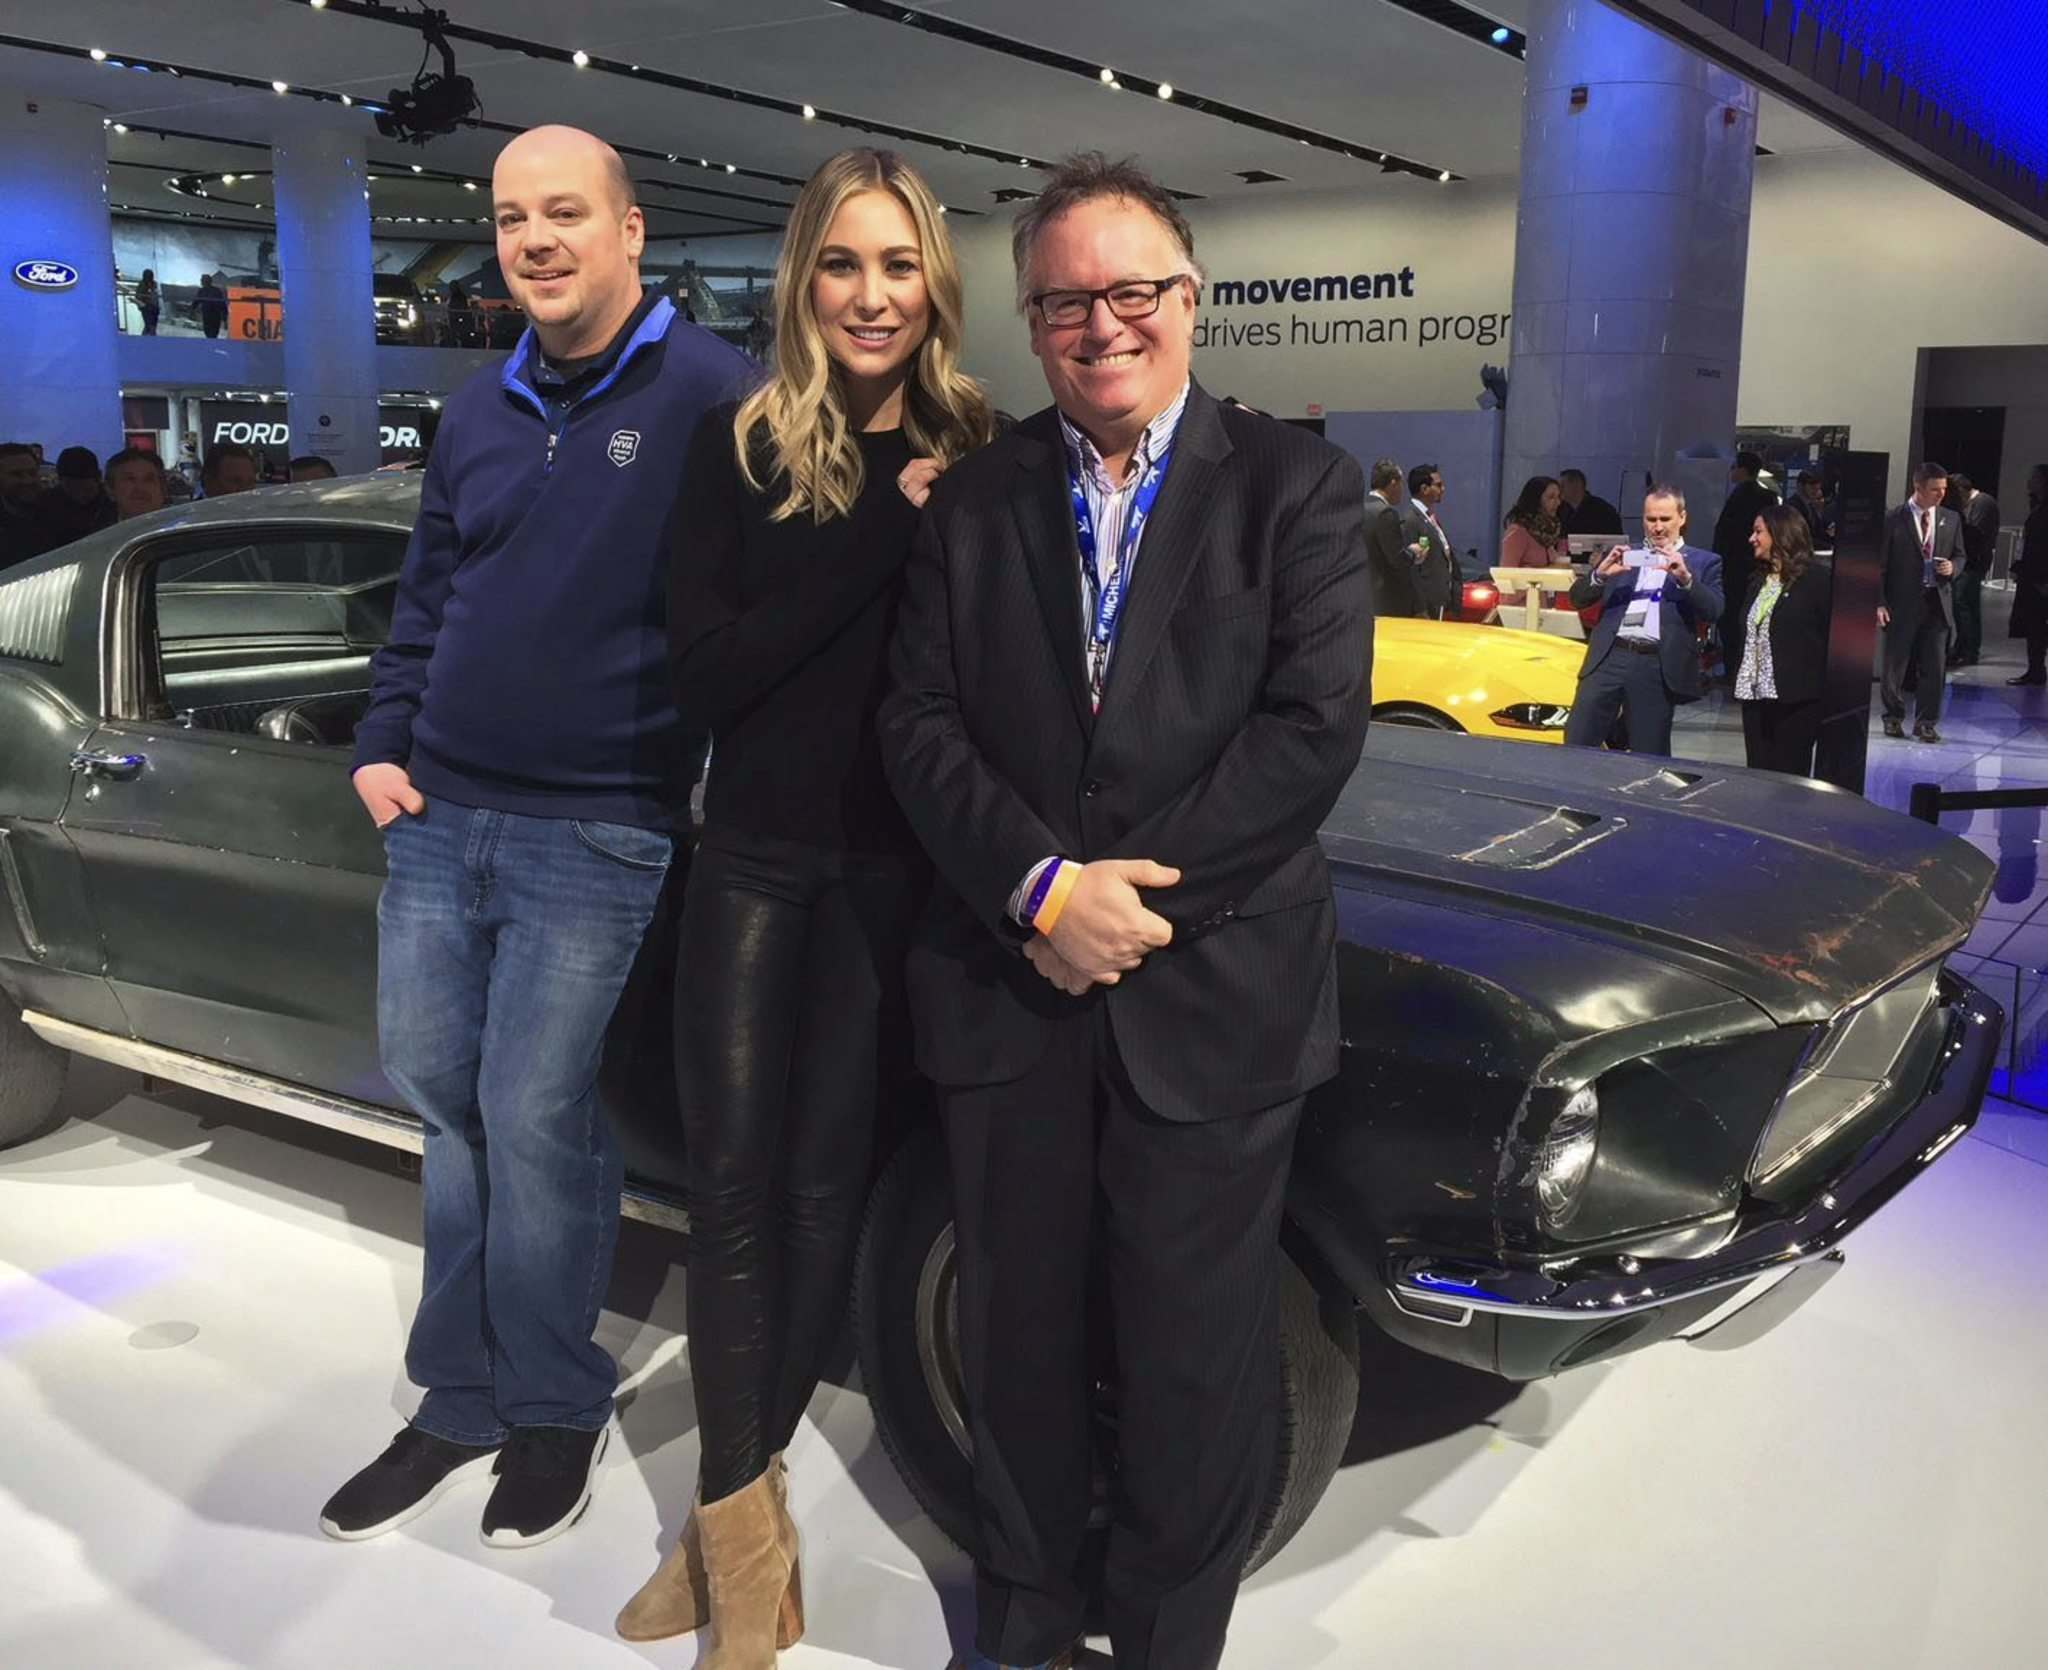 SuppliedSean Kiernan (from left), Molly McQueen and Free Press automotive journalist Kelly Taylor with the original 1968 Mustang from the movie Bullitt, starring McQueen's grandfather Steve.